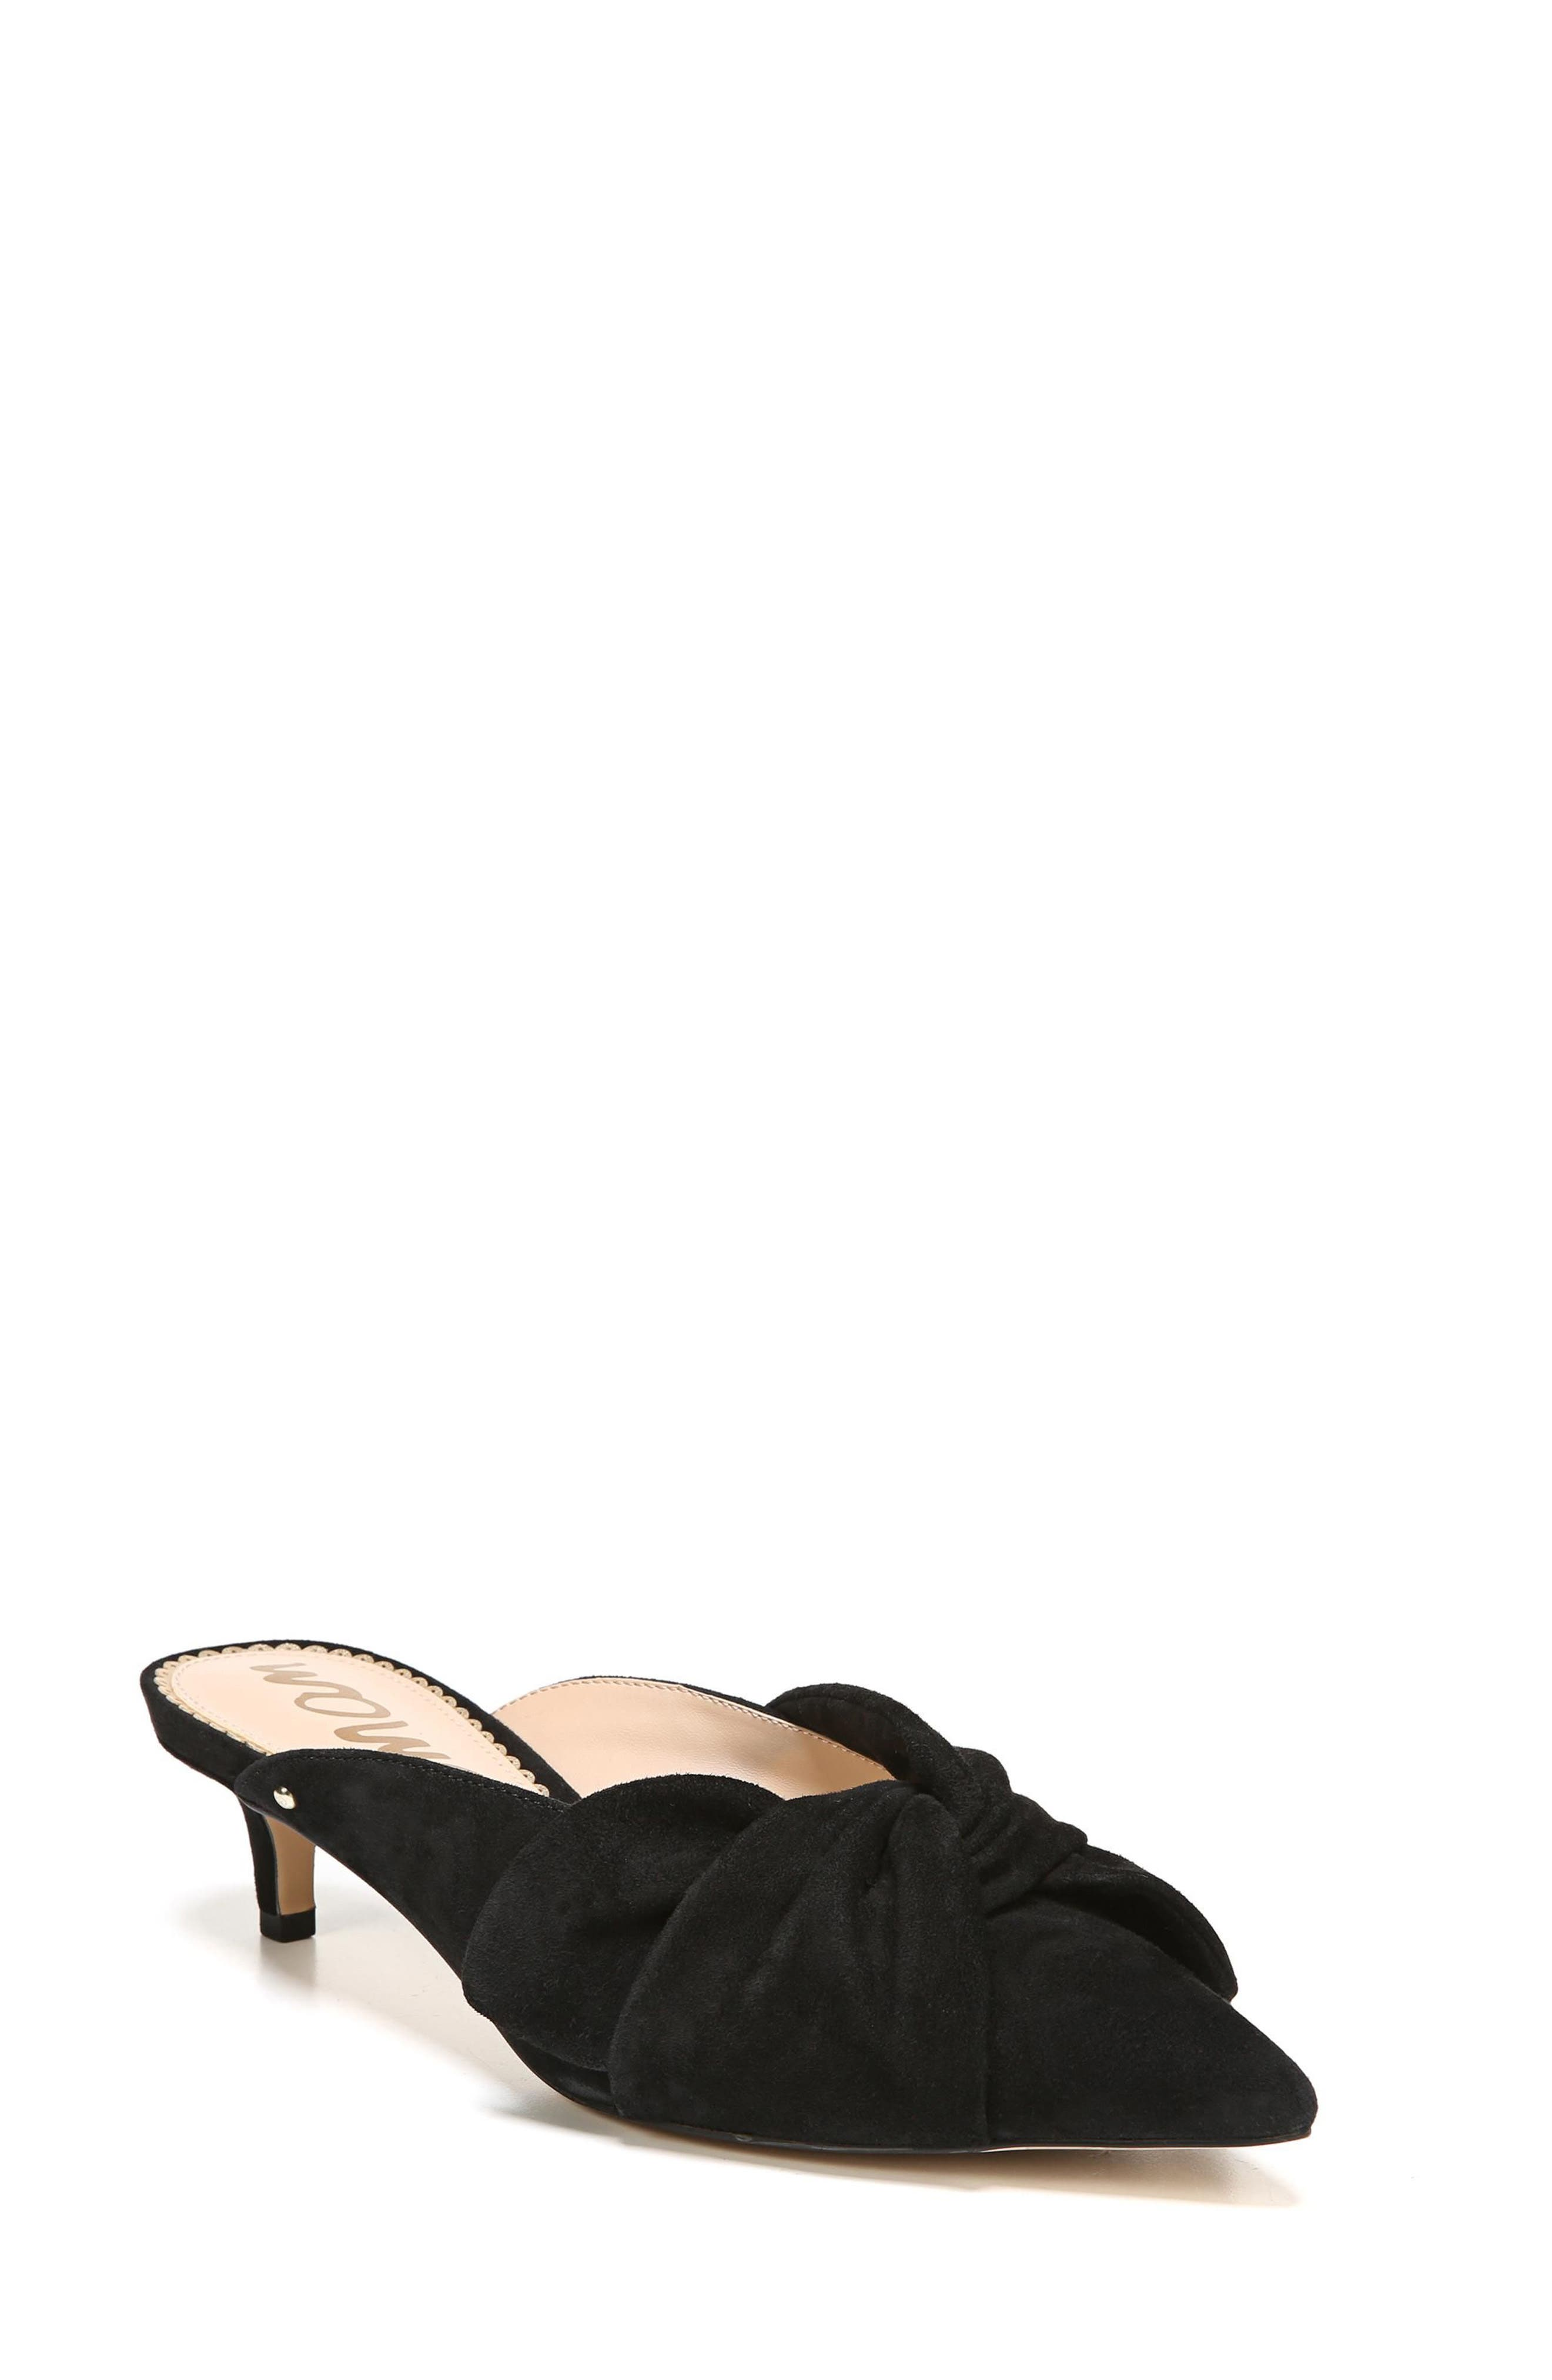 Laney Pointy Toe Mule,                             Main thumbnail 1, color,